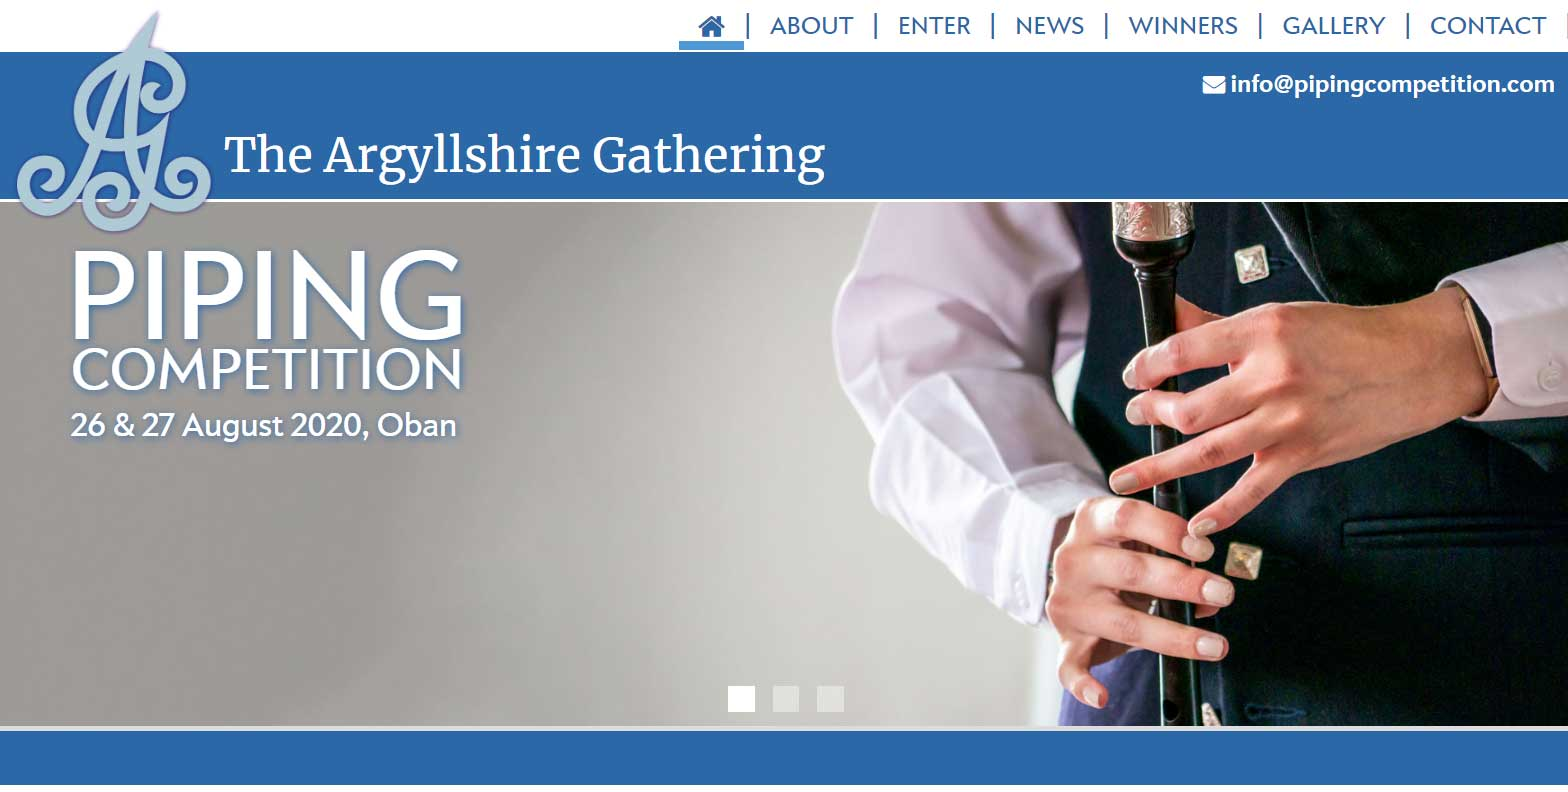 Argyllshire Gathering Piping Competition website